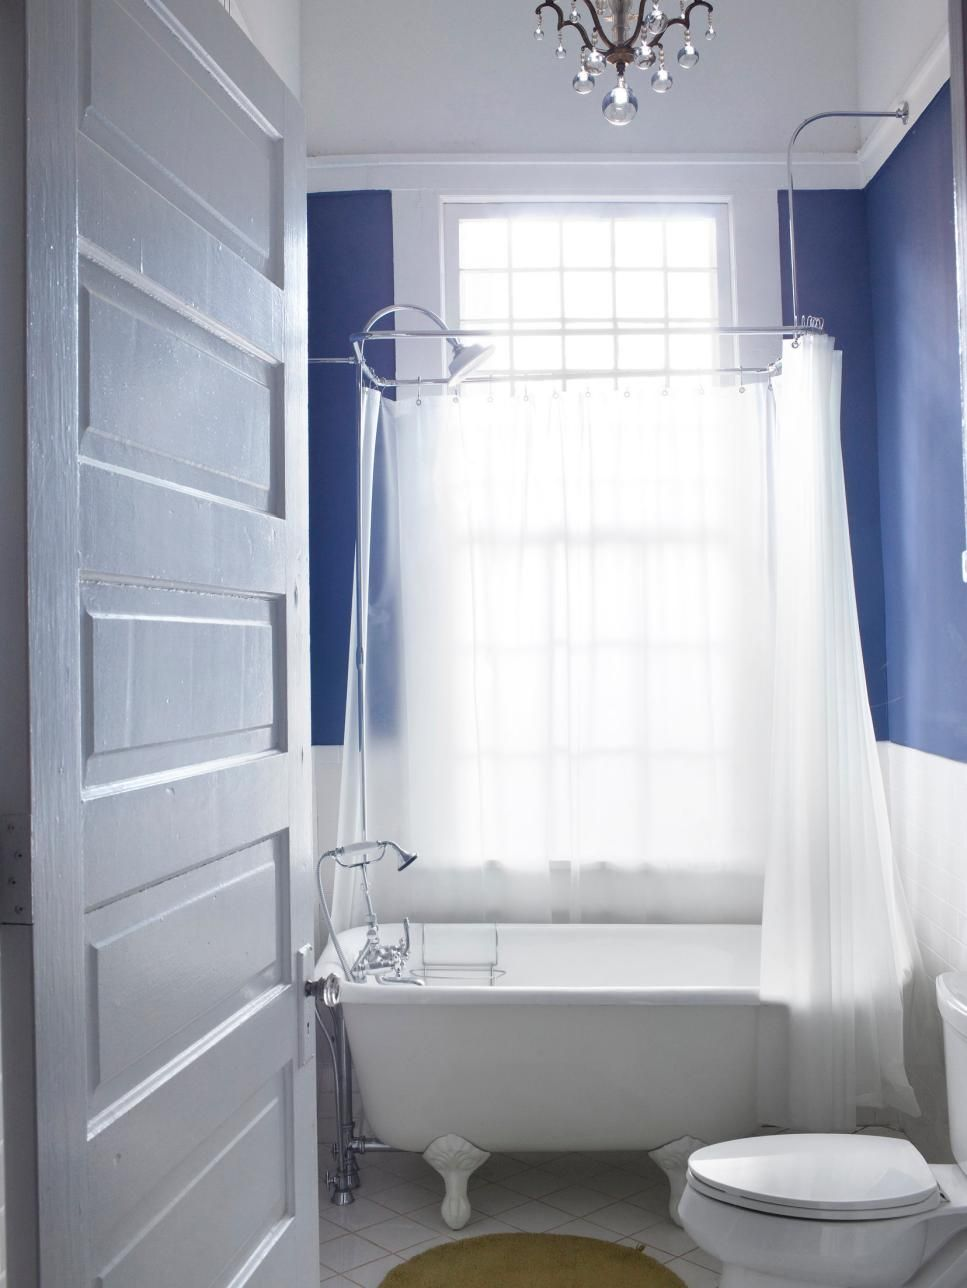 Bathroom Pictures: 99 Stylish Design Ideas You\'ll Love | Blue walls ...